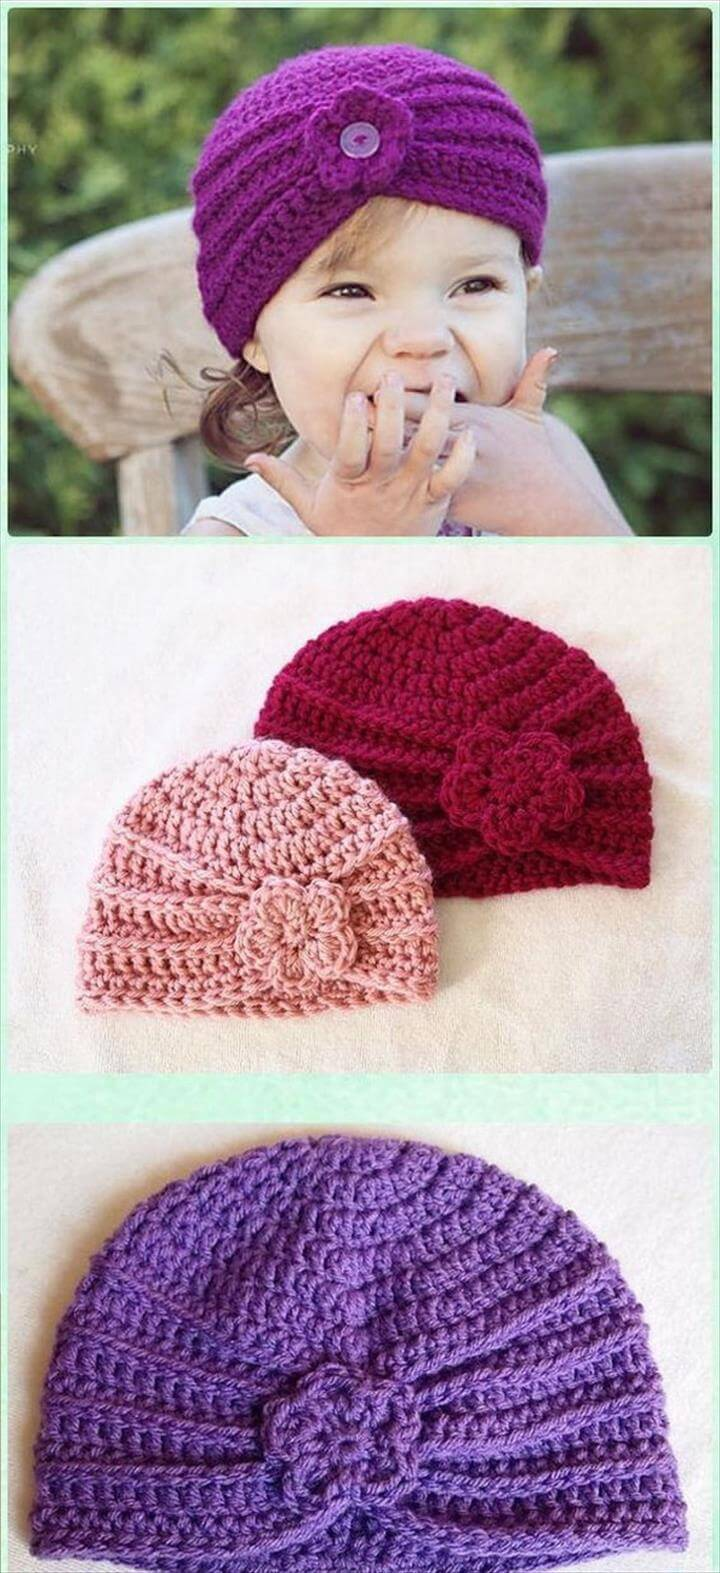 Crochet Turban Hat Free Patterns. Bring a pop of fun color to crochet this simple